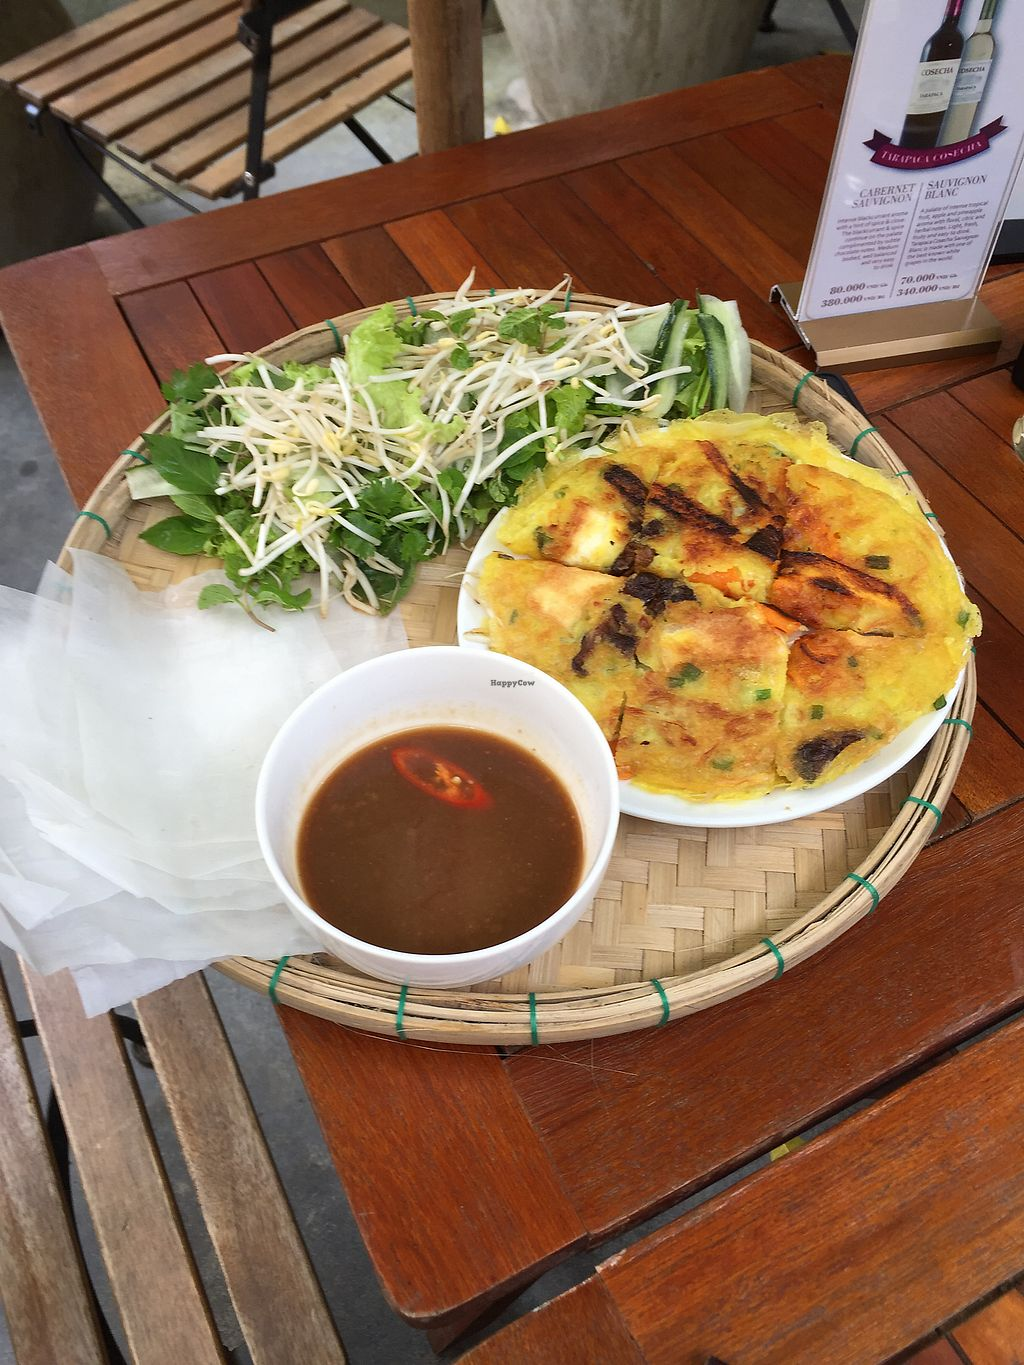 """Photo of What Else Cafe  by <a href=""""/members/profile/kars10"""">kars10</a> <br/>Mushroom Pancake  <br/> February 1, 2018  - <a href='/contact/abuse/image/101159/353519'>Report</a>"""